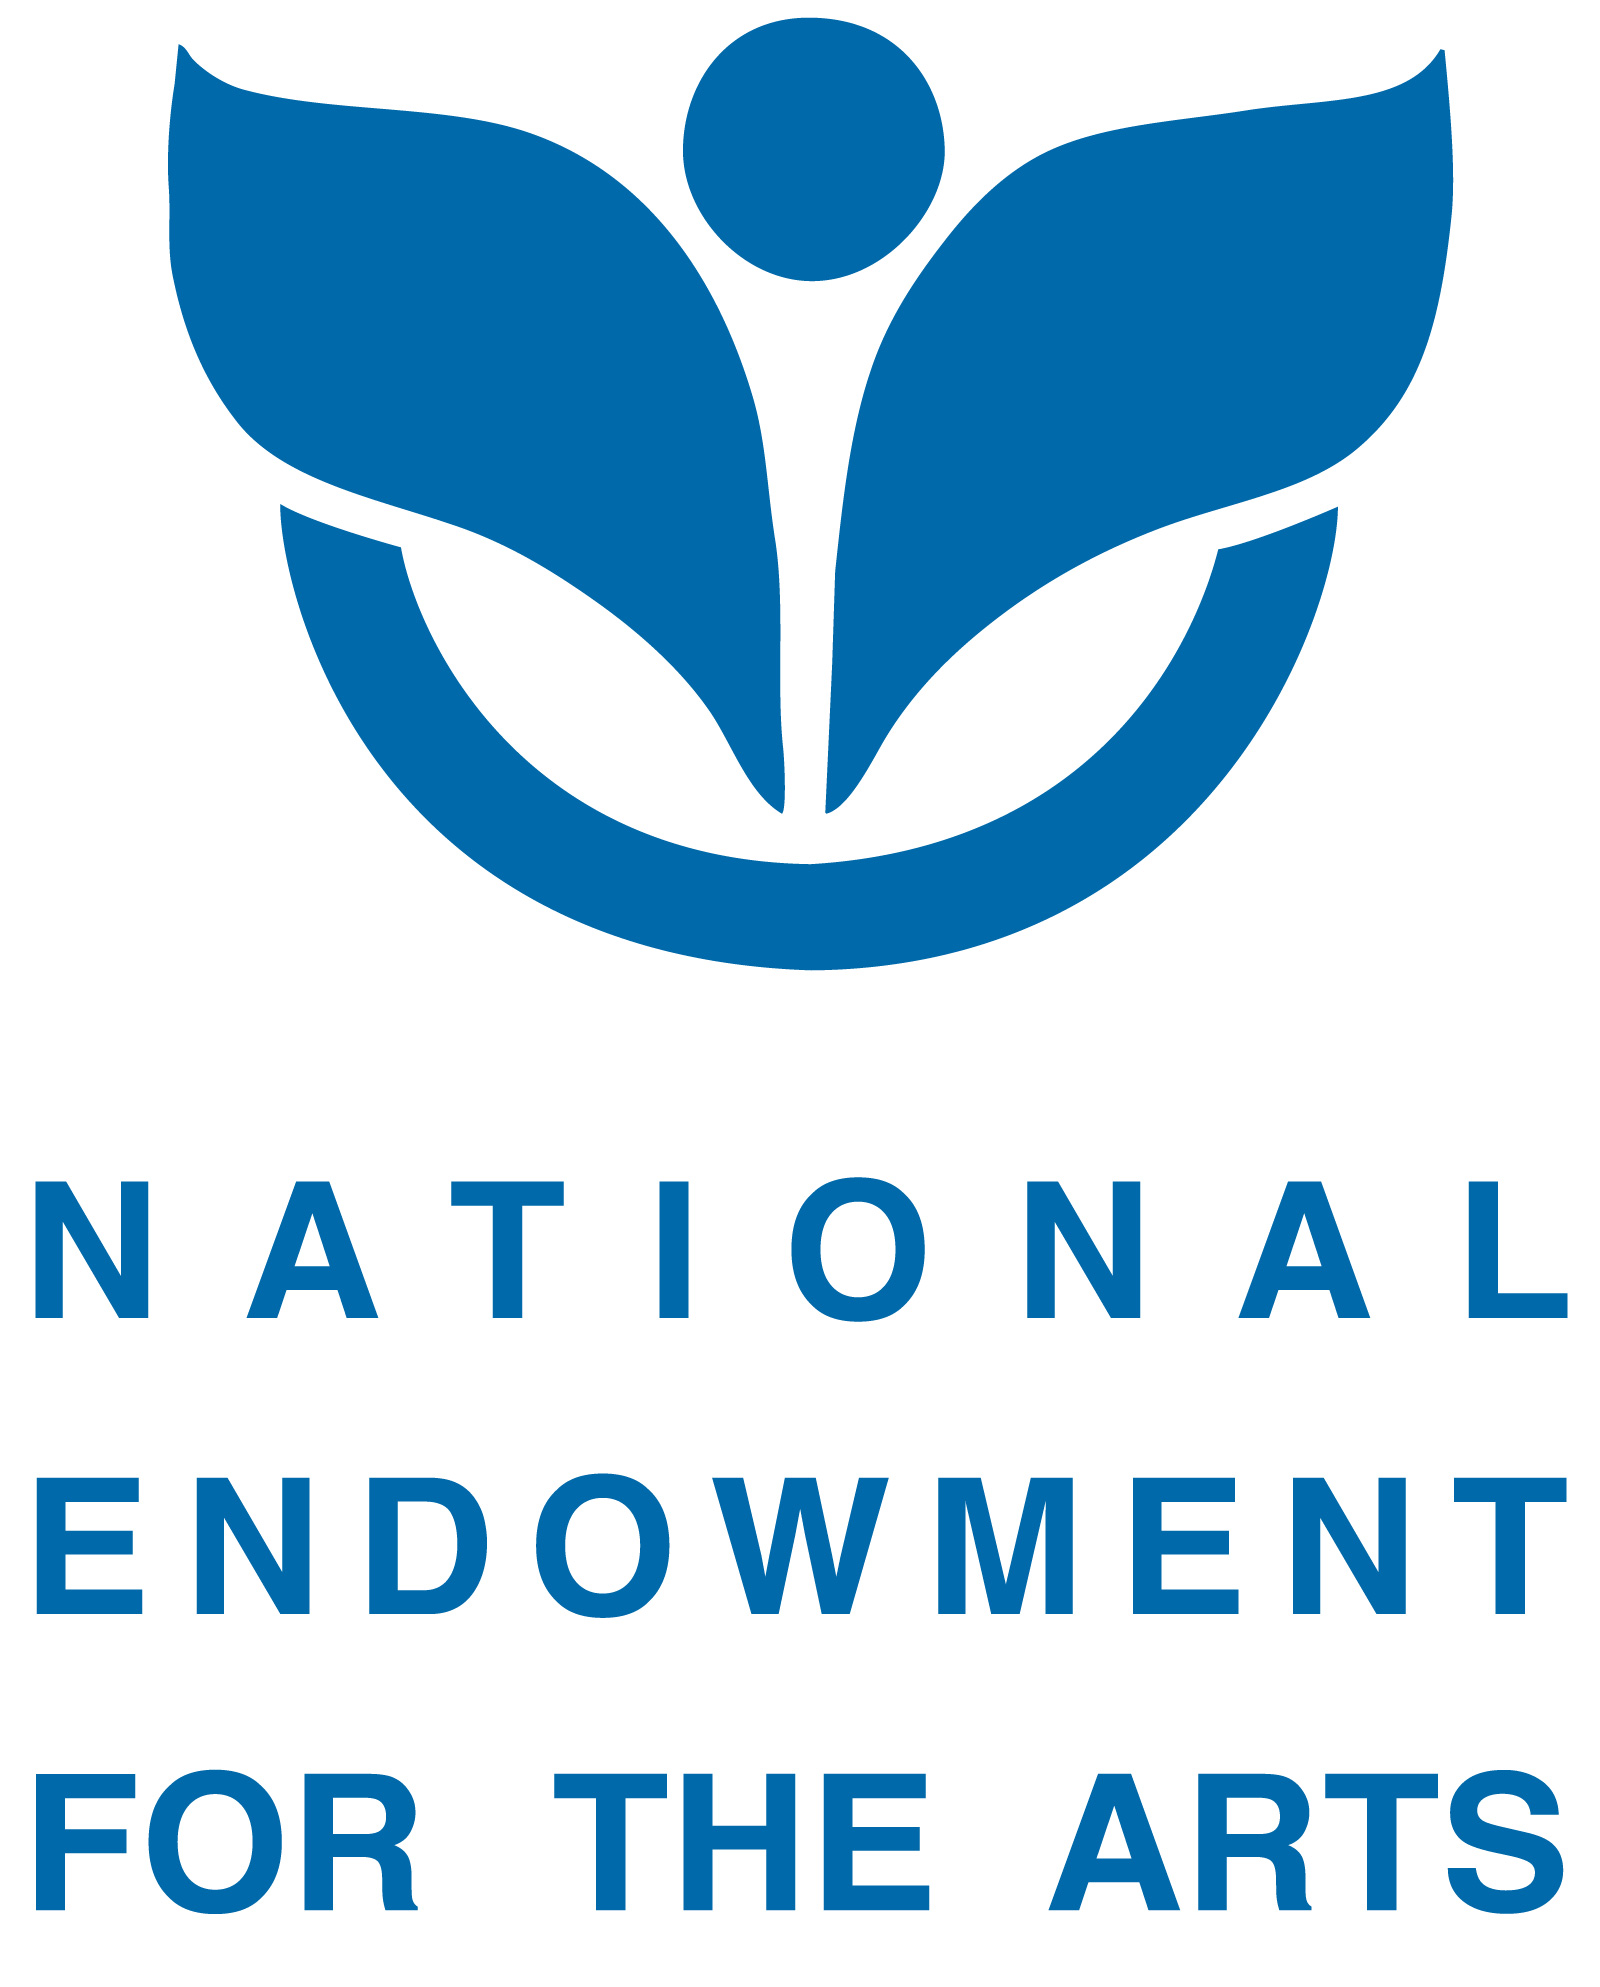 National Endowment for the Arts Fellow